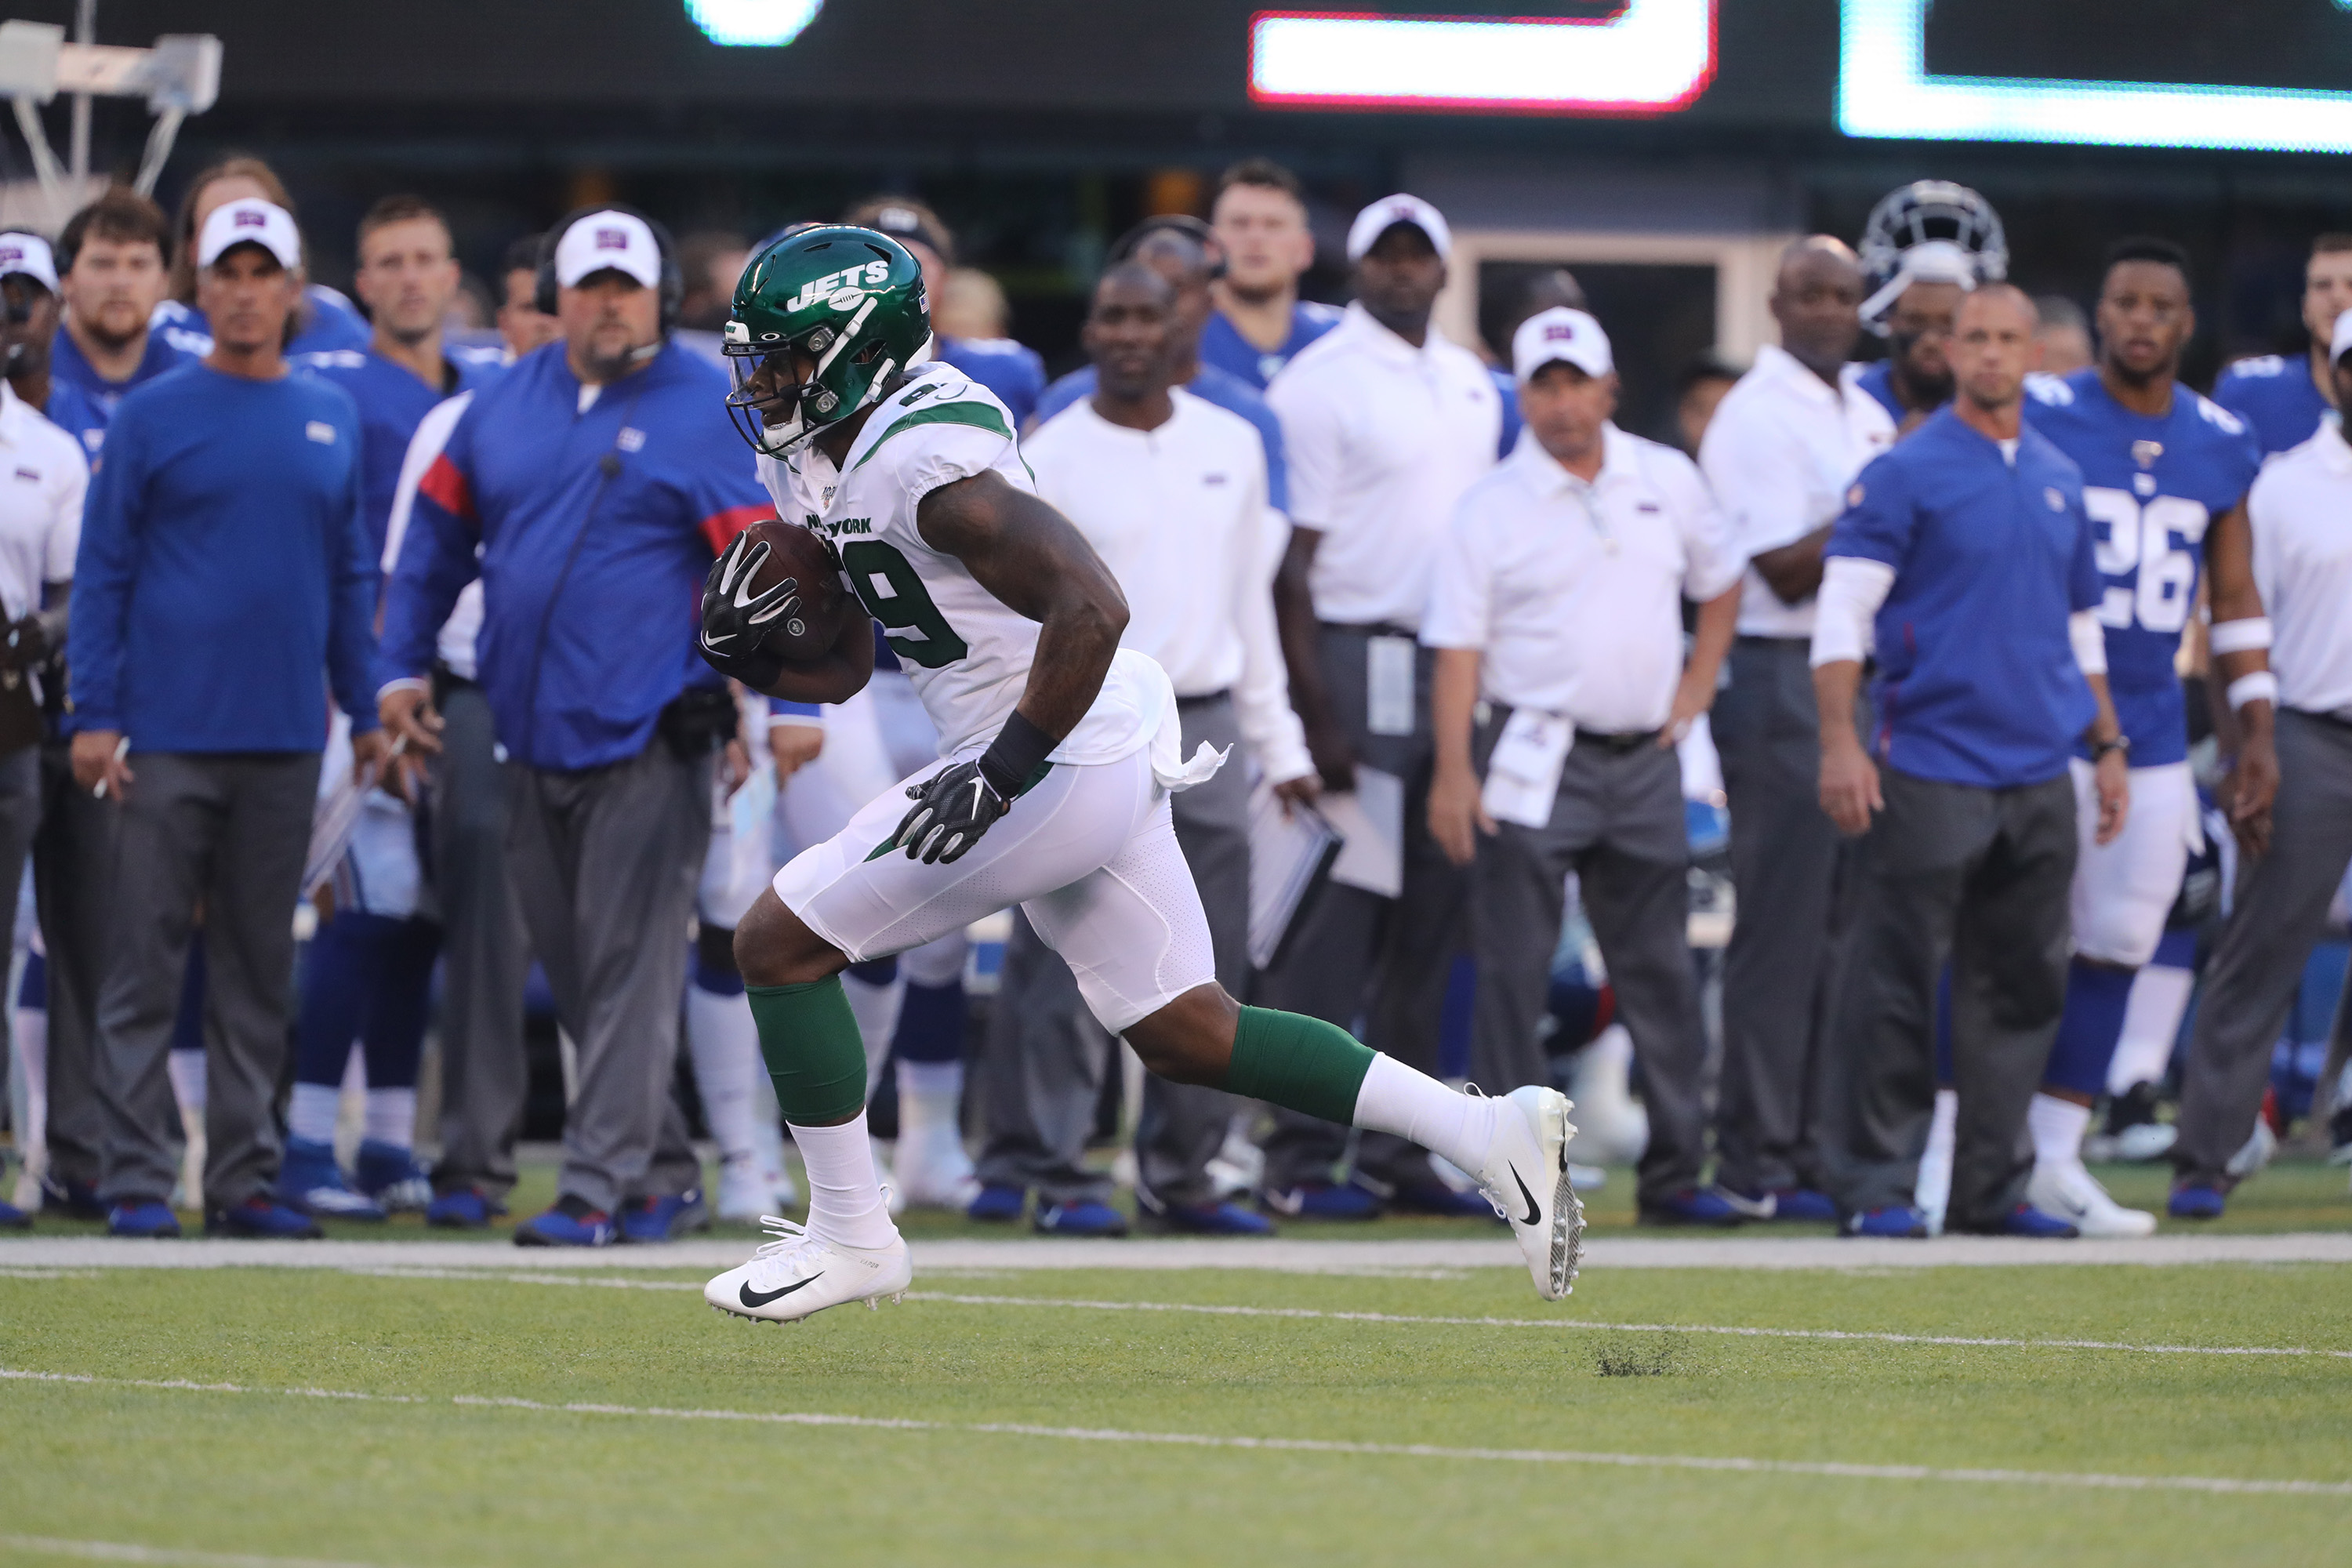 Tight End Chris Herndon of the New York Jets in action against the New York Giants during their Preseason game at MetLife Stadium on August 08, 2019 in East Rutherford, New Jersey.